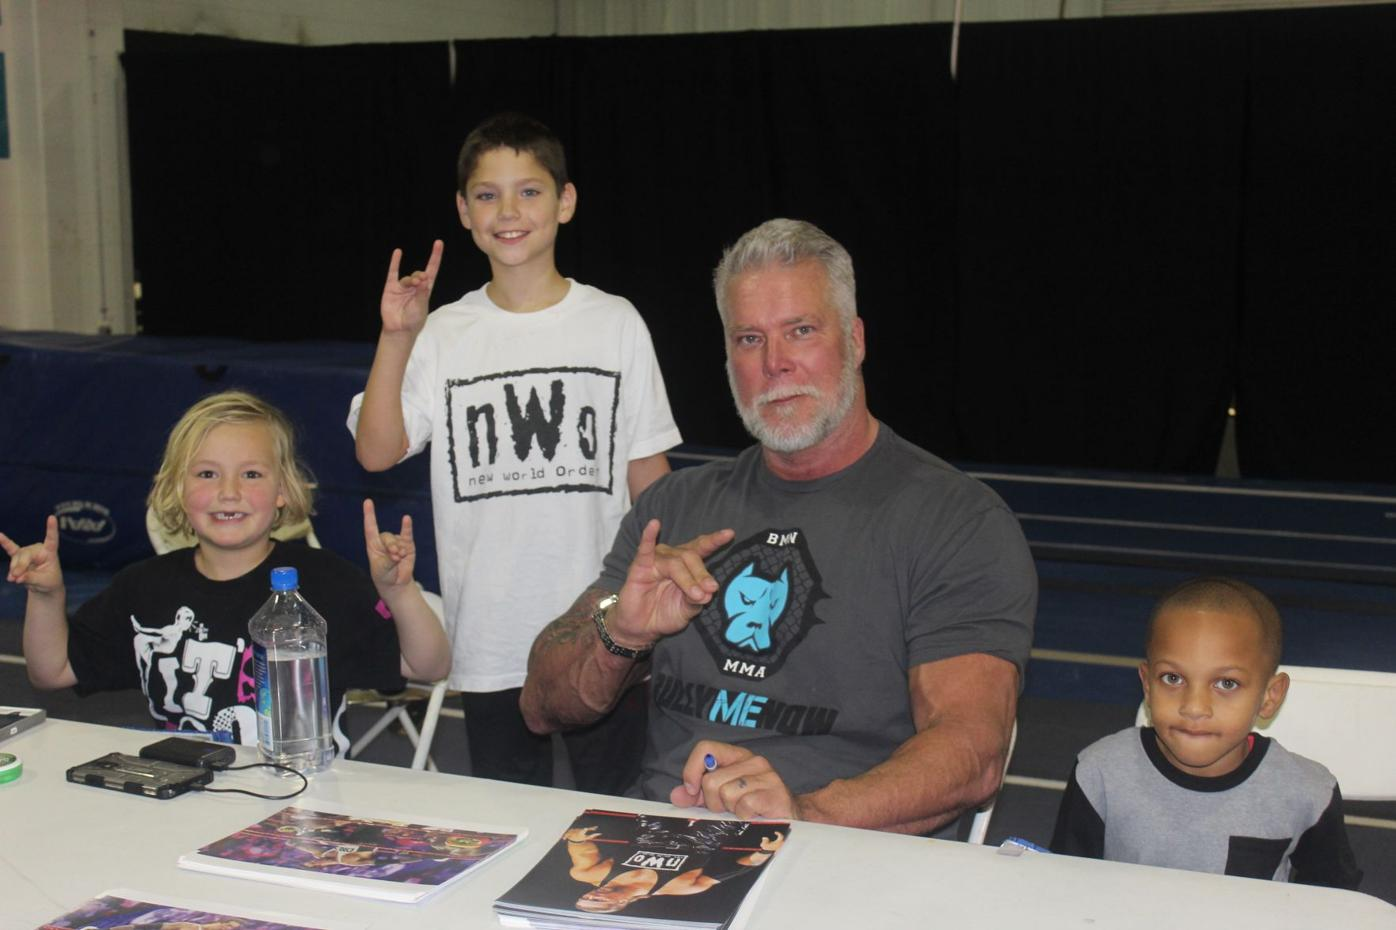 Nash meets fans at MCW Pro Wrestling event in Waldorf